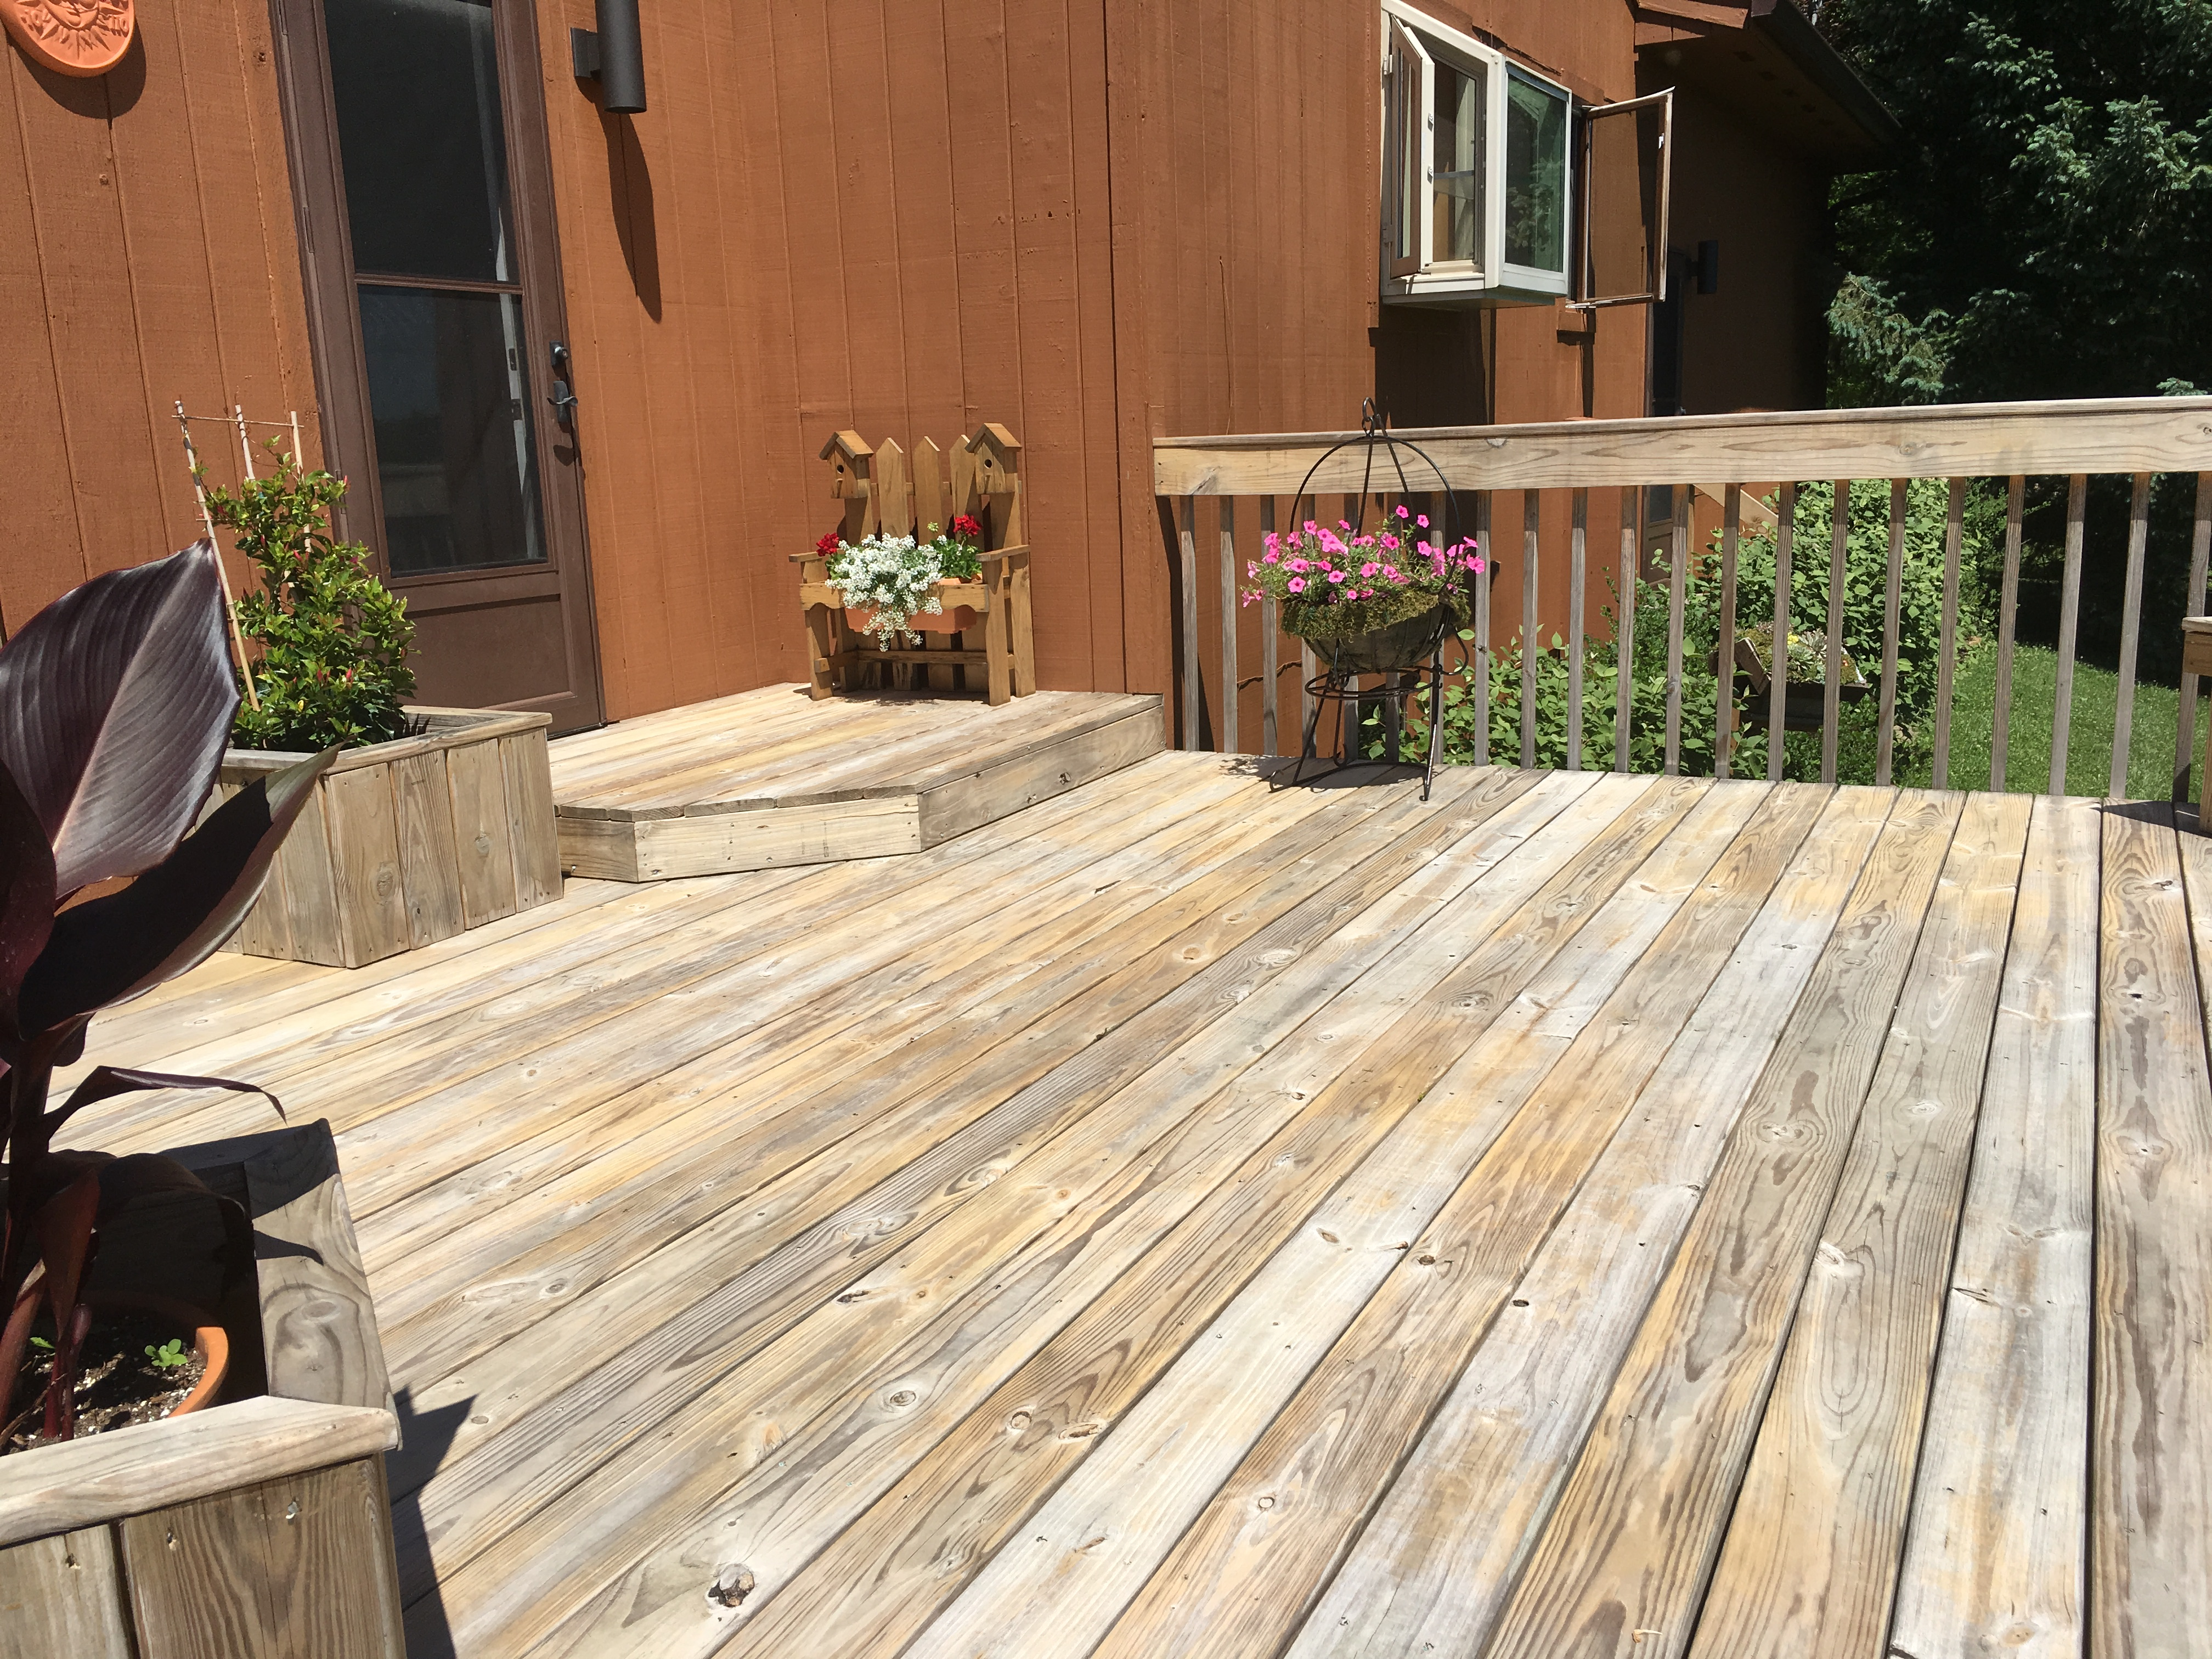 Can I Successfully Ly Semi Transpa Or Solid Stain On This Newly Cleaned Two Year Old Deck Prefer Textured Luck My Goal Is To Preserve Wood